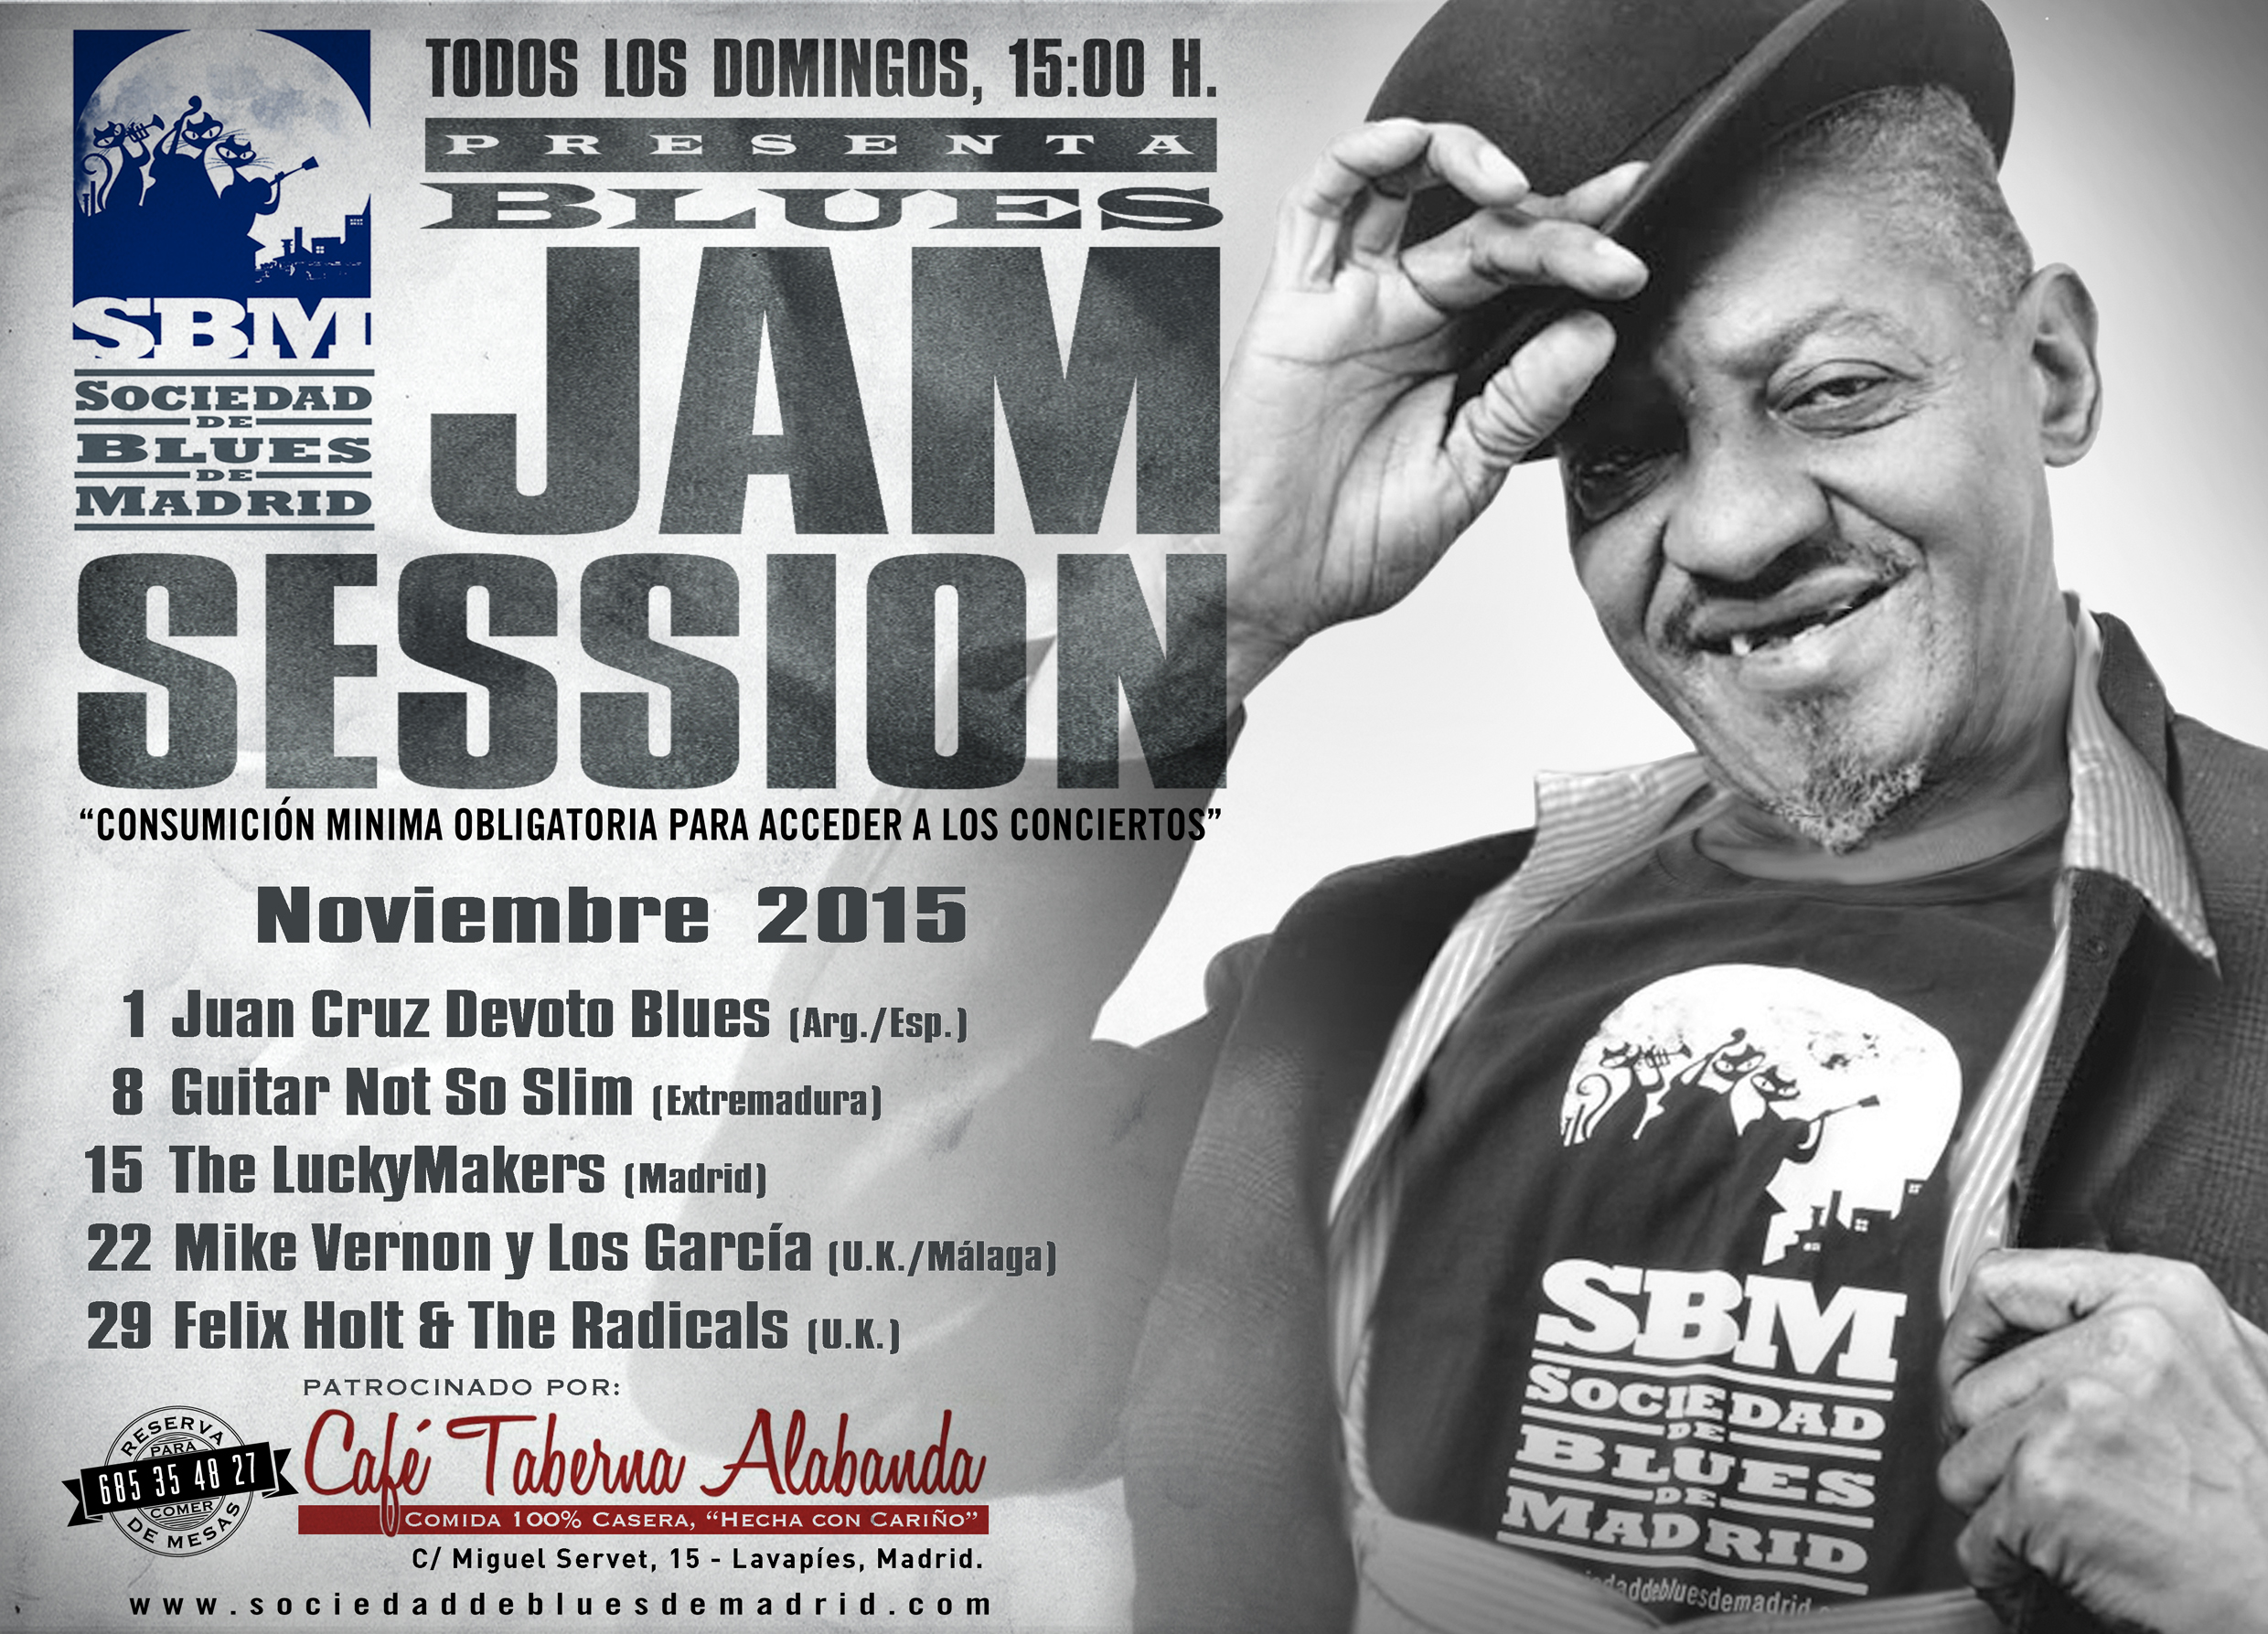 cartel jams Nov 2015